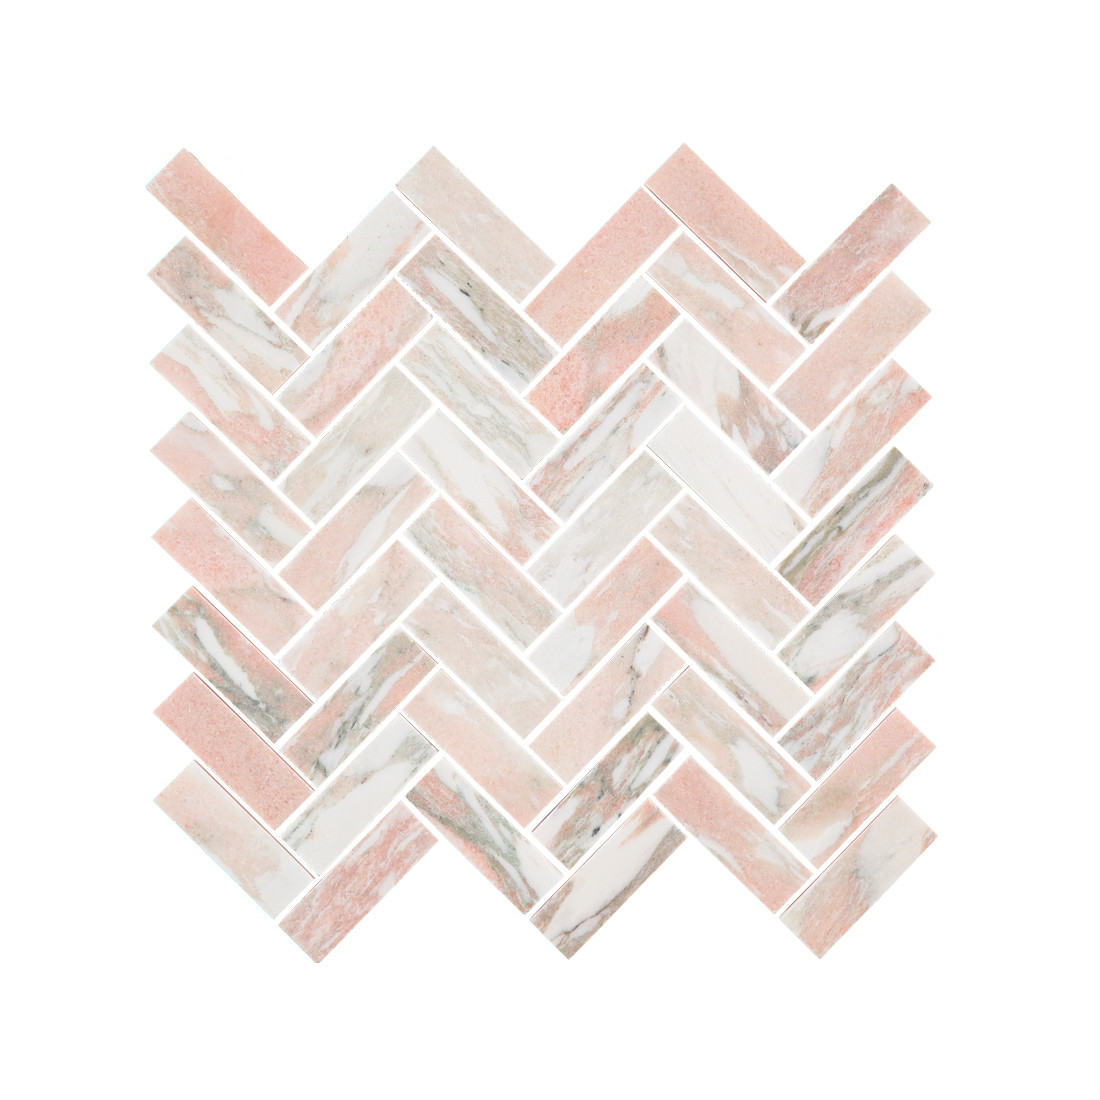 Norwegian Rose Marble Herringbone Mosaic